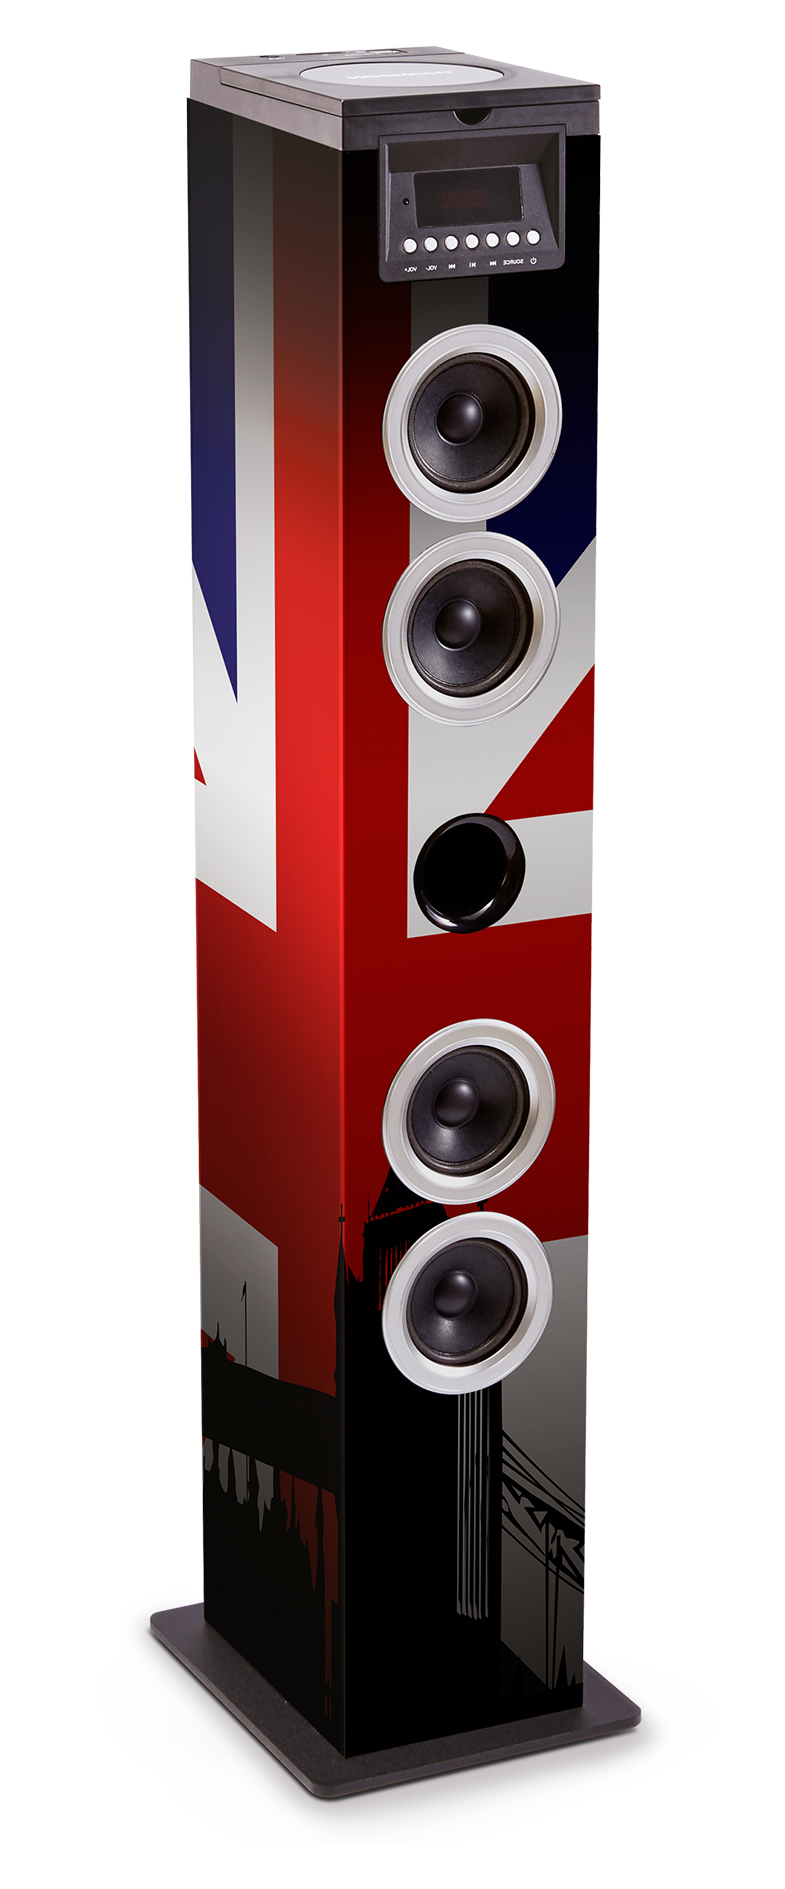 tour multim dia lecteur cd tw12cdgb bigben bigben fr sound accessoires gaming mobile. Black Bedroom Furniture Sets. Home Design Ideas